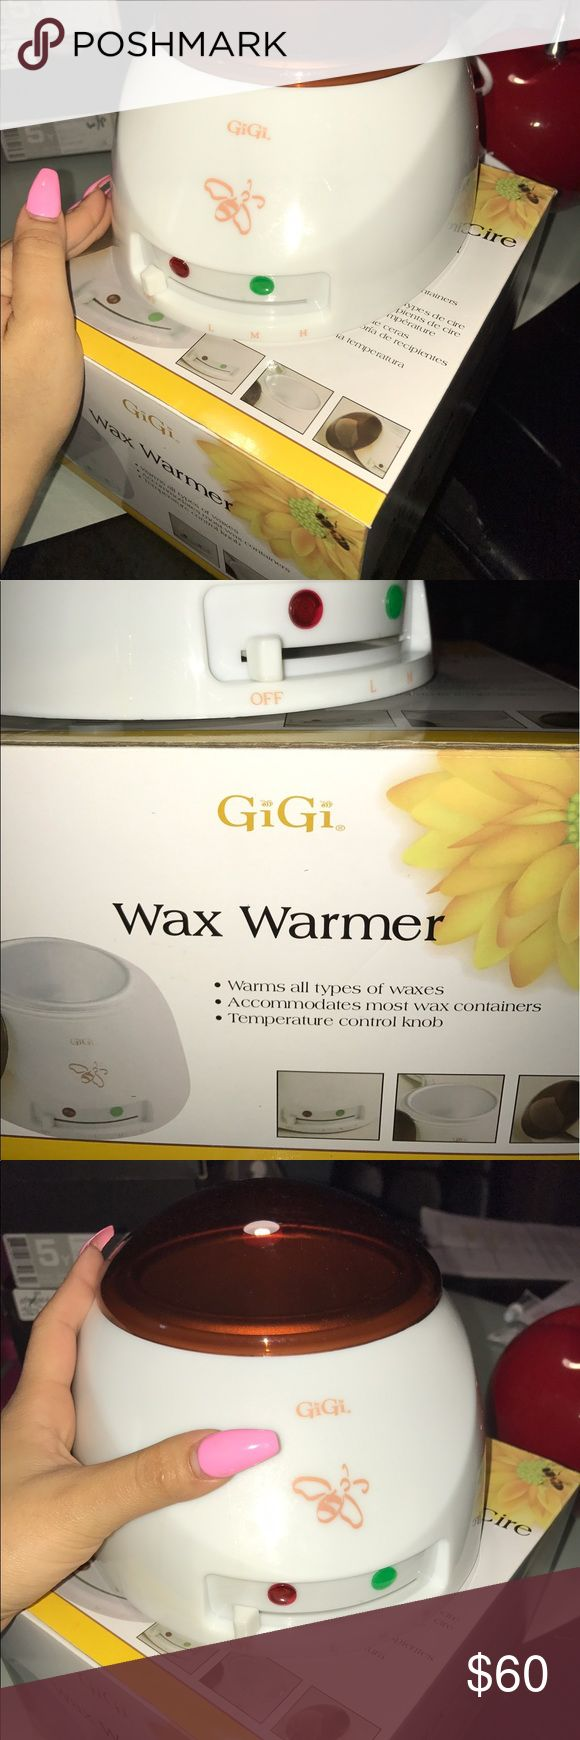 Gigi Wax warmer Brand new Professional wax warmer, works perdectly, and comes with all accesories, wax, sticks, cleanser and skin lotion! Other